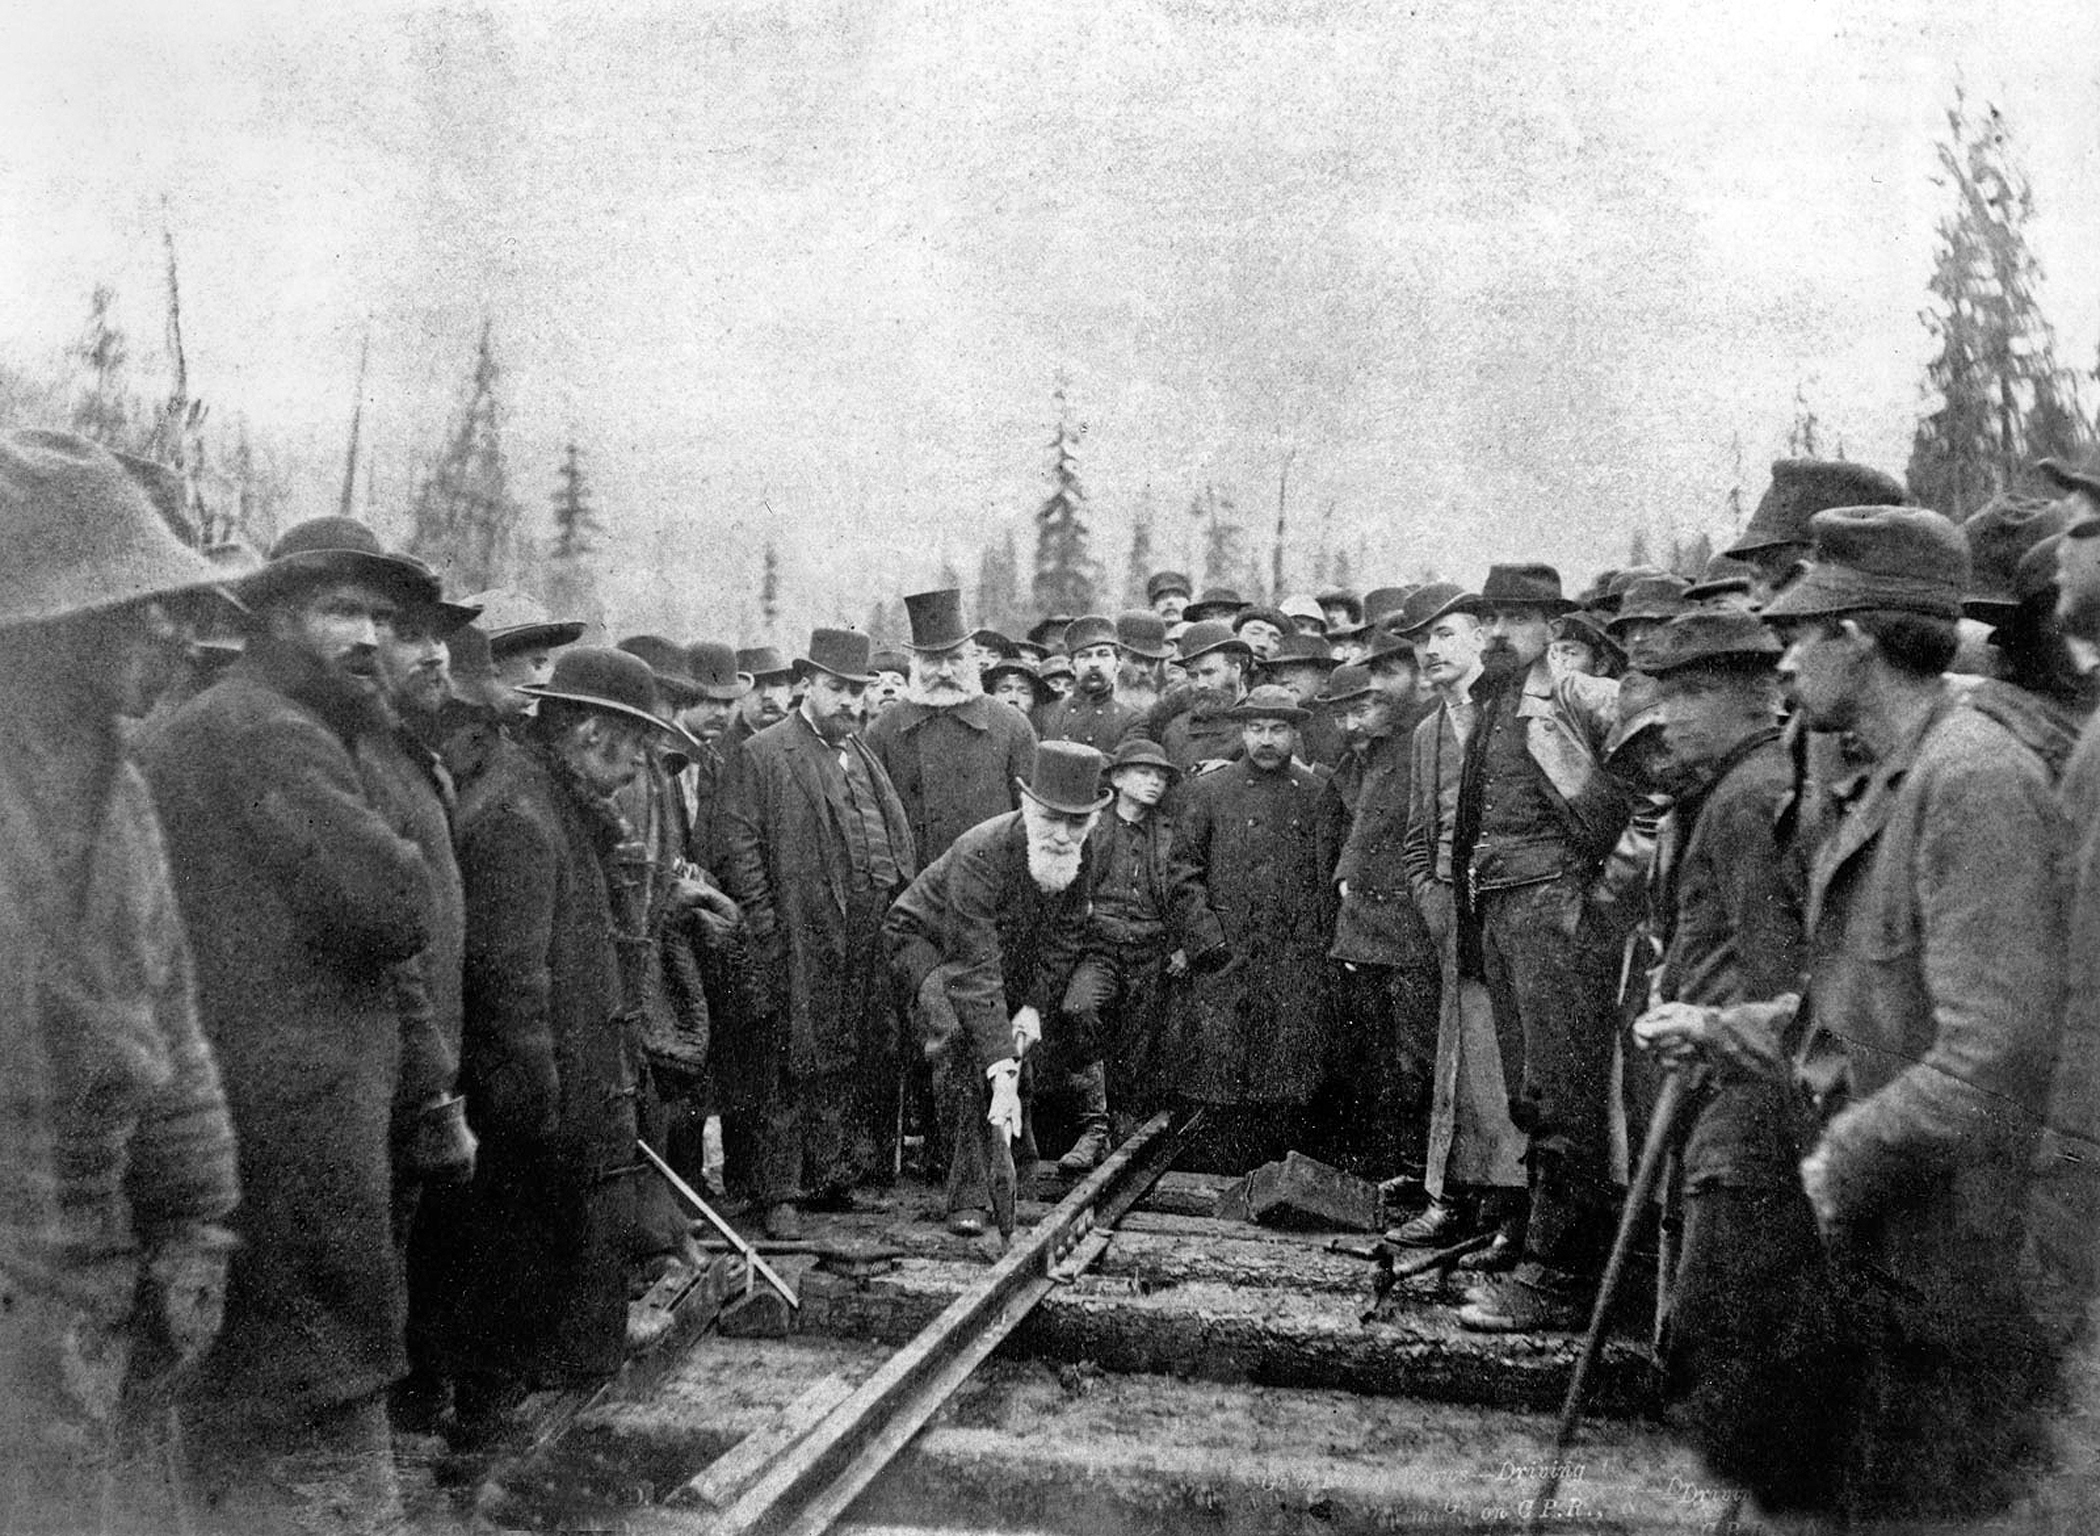 A black and white photo taken in 1885, with over a hundred gentlemen in dark woolen suits surrounding one, Sir Donald A. Smith, who is poised above a piece of railroad track, wearing a top hat and holding a large hammer against the track, about to drive the last railroad spike for the Canadian Pacific Railway.